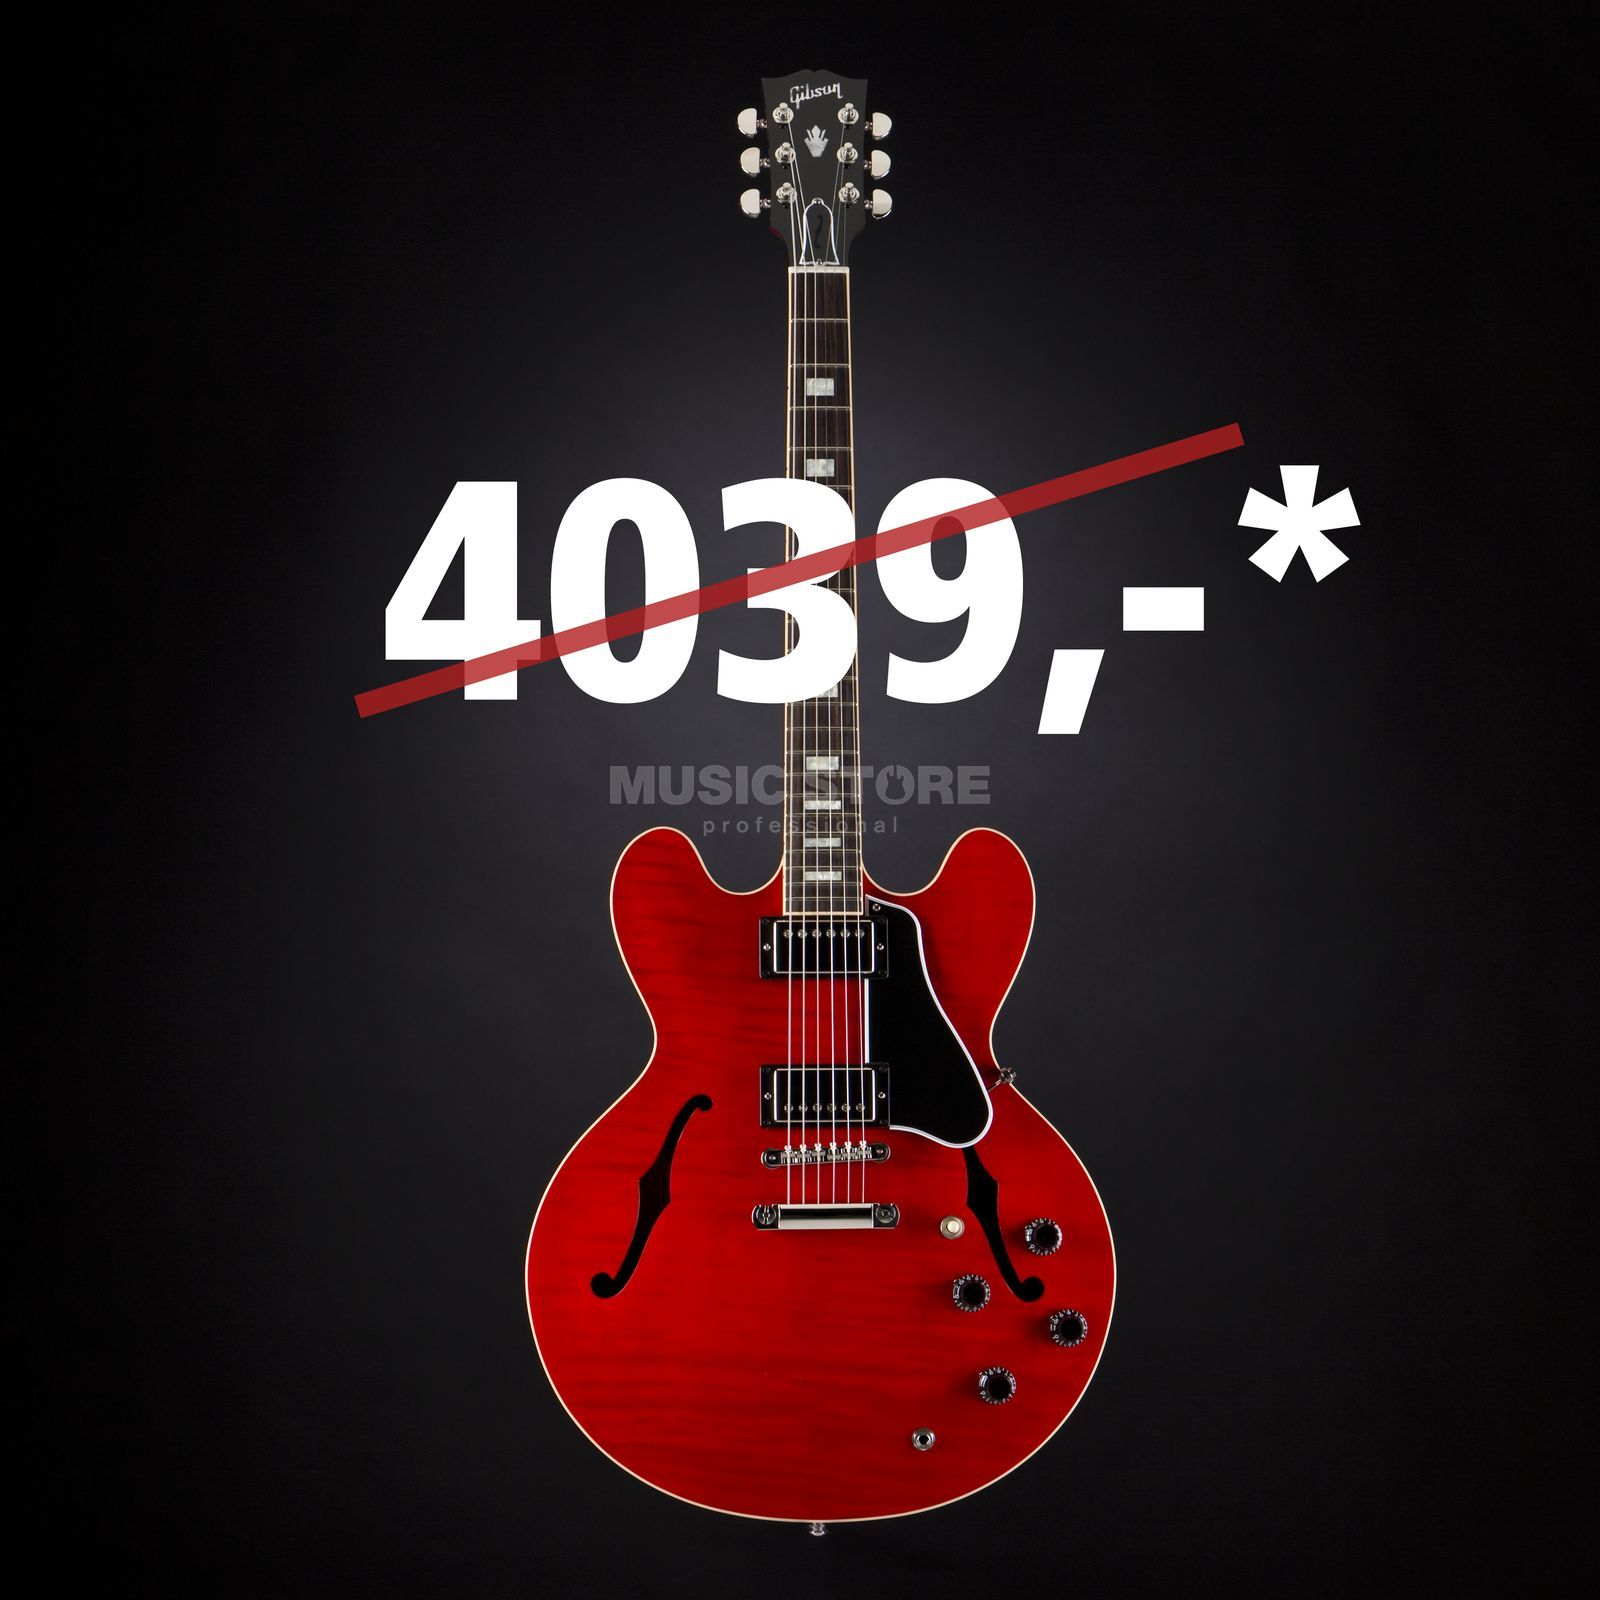 Gibson ES-335 Slim Neck Cherry #11036713 Product Image